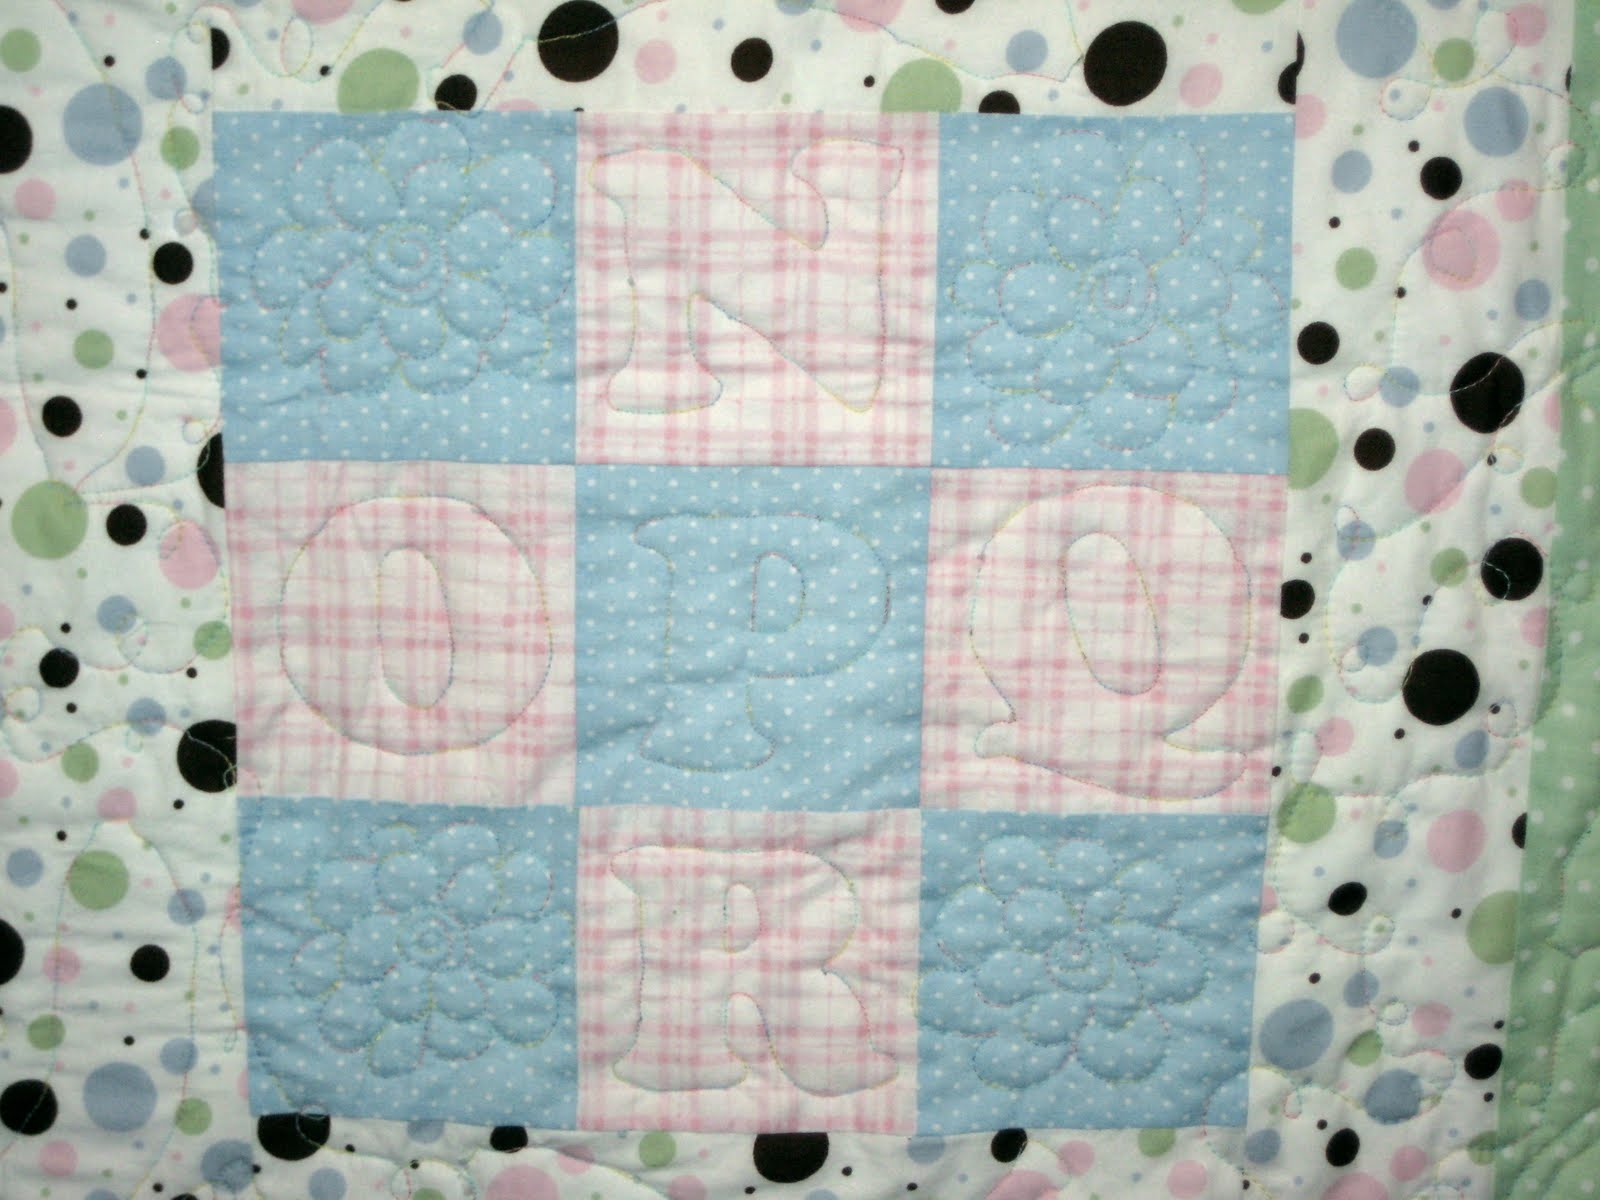 A quilt obsession